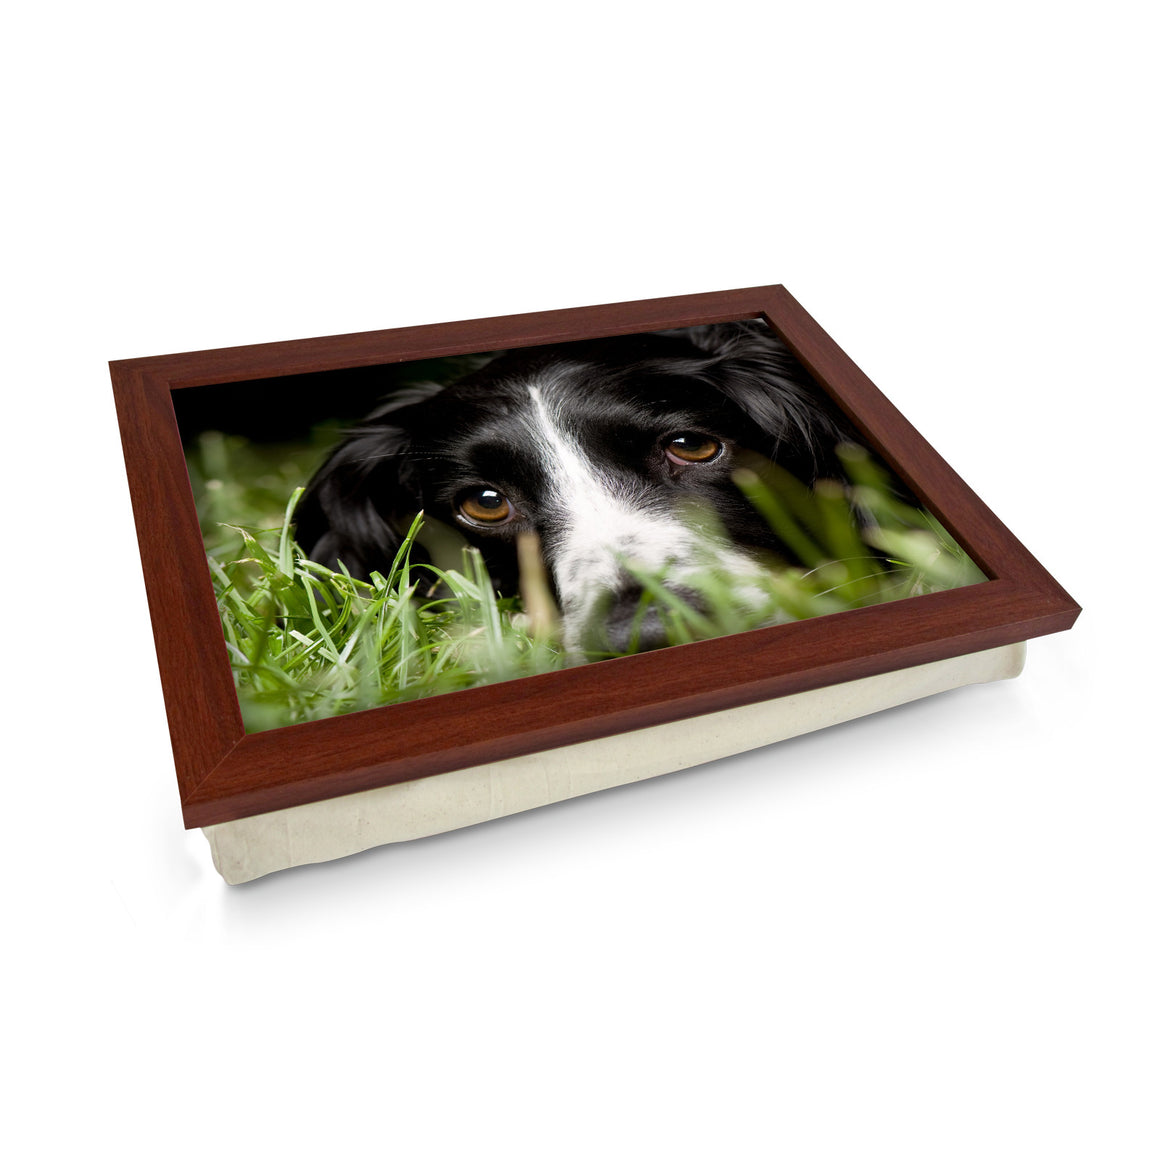 Black Cocker Spaniel Dog Lap Tray - L0584